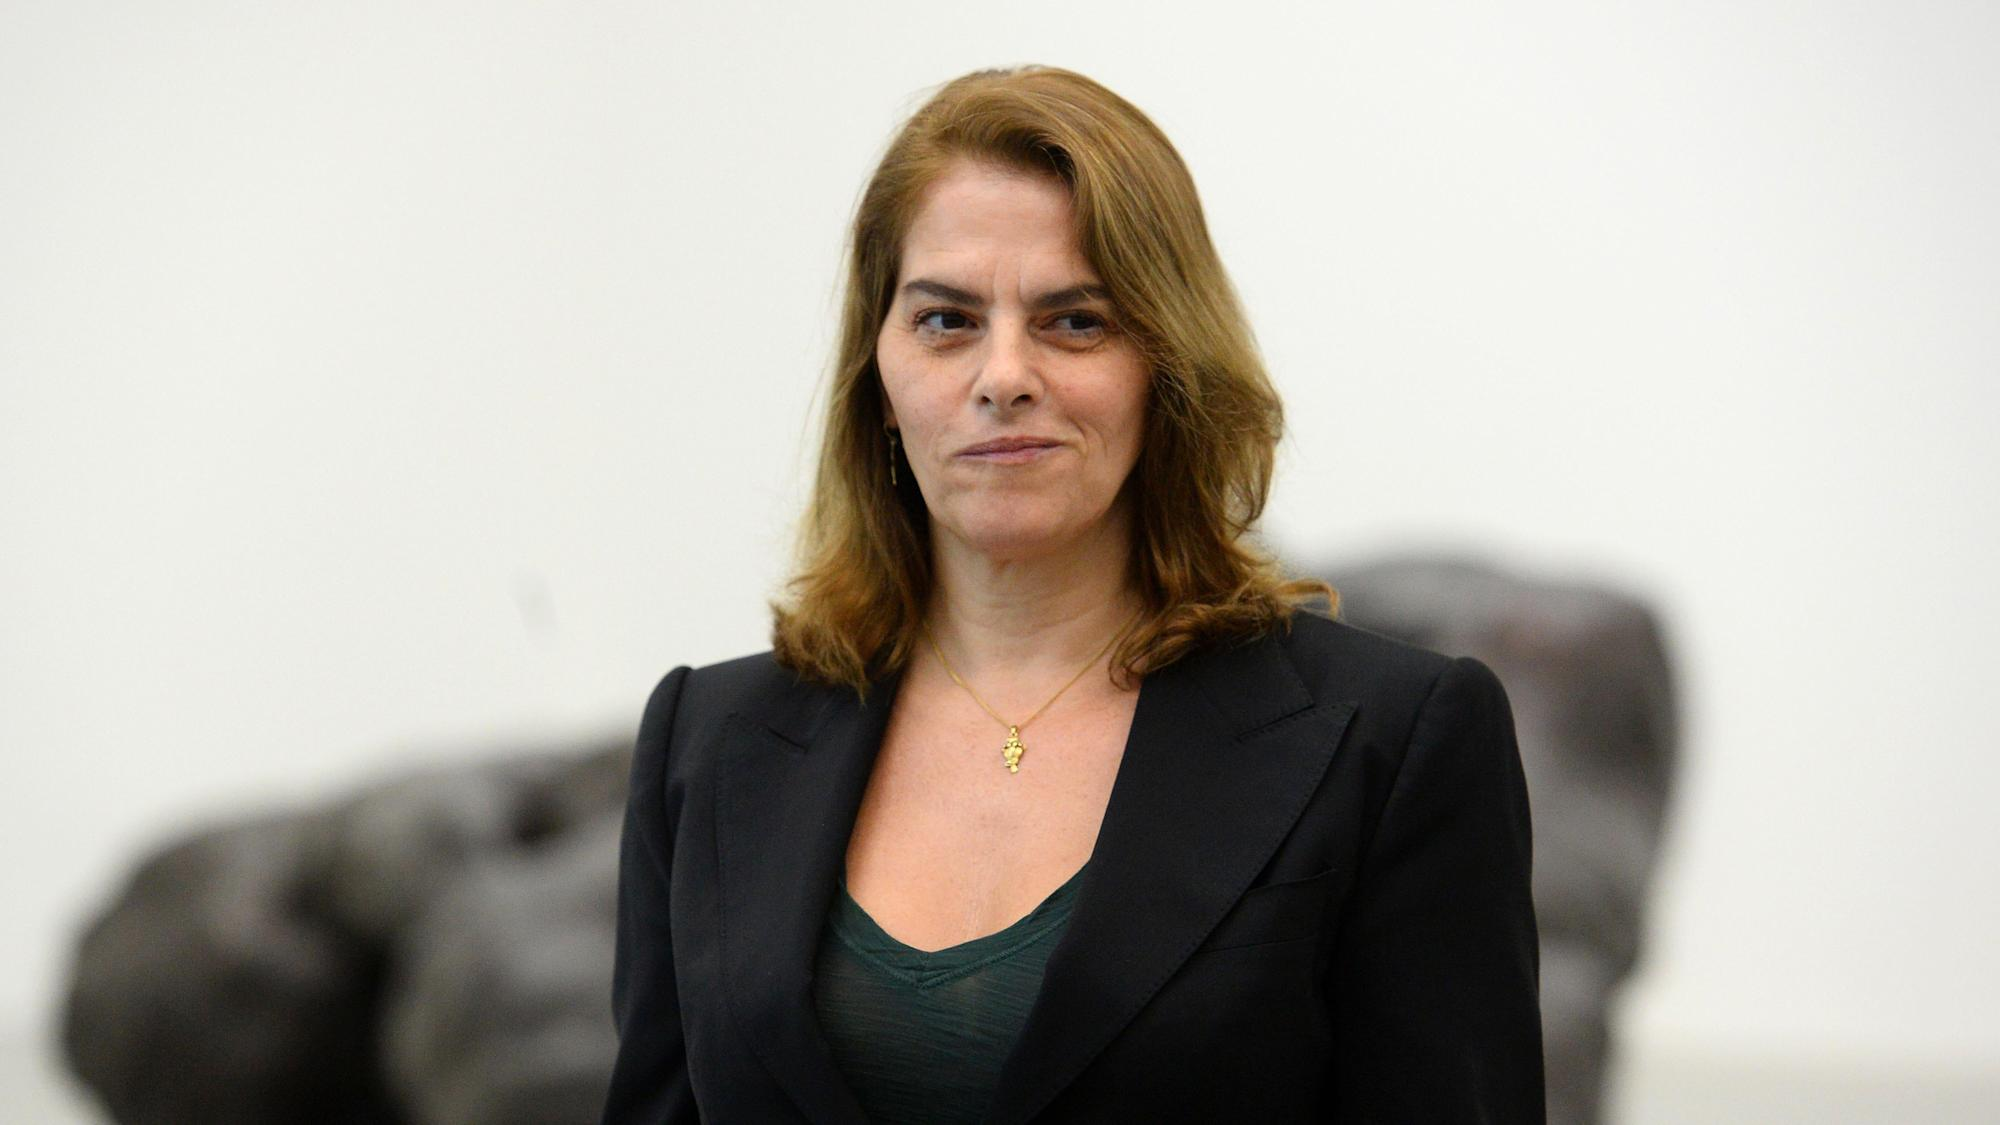 Tracey Emin has 'never been so happy' after surgery for cancer